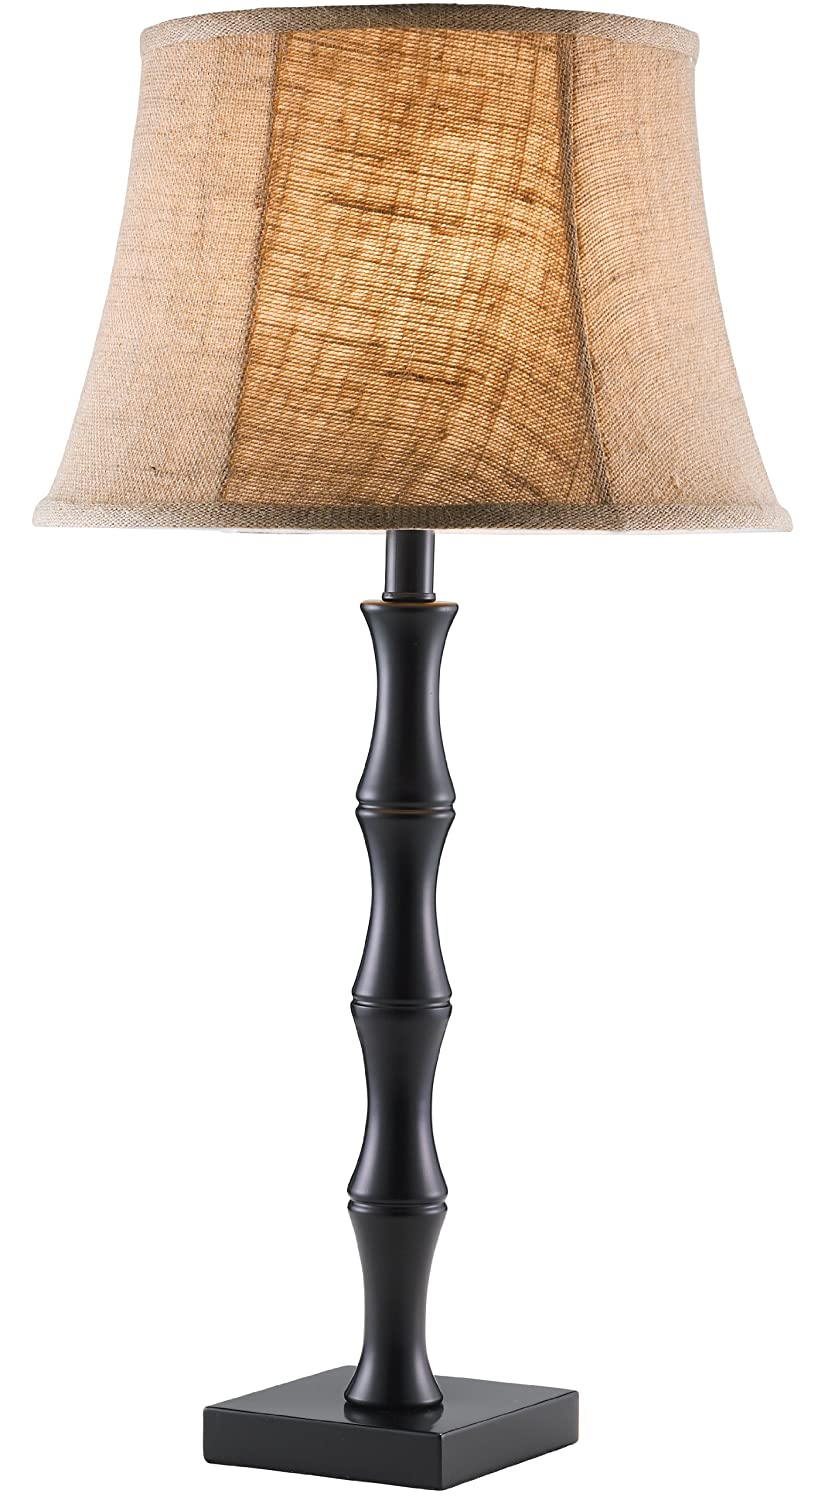 Adesso 1522 01 stratton table lamp black floor lamps amazon geotapseo Image collections